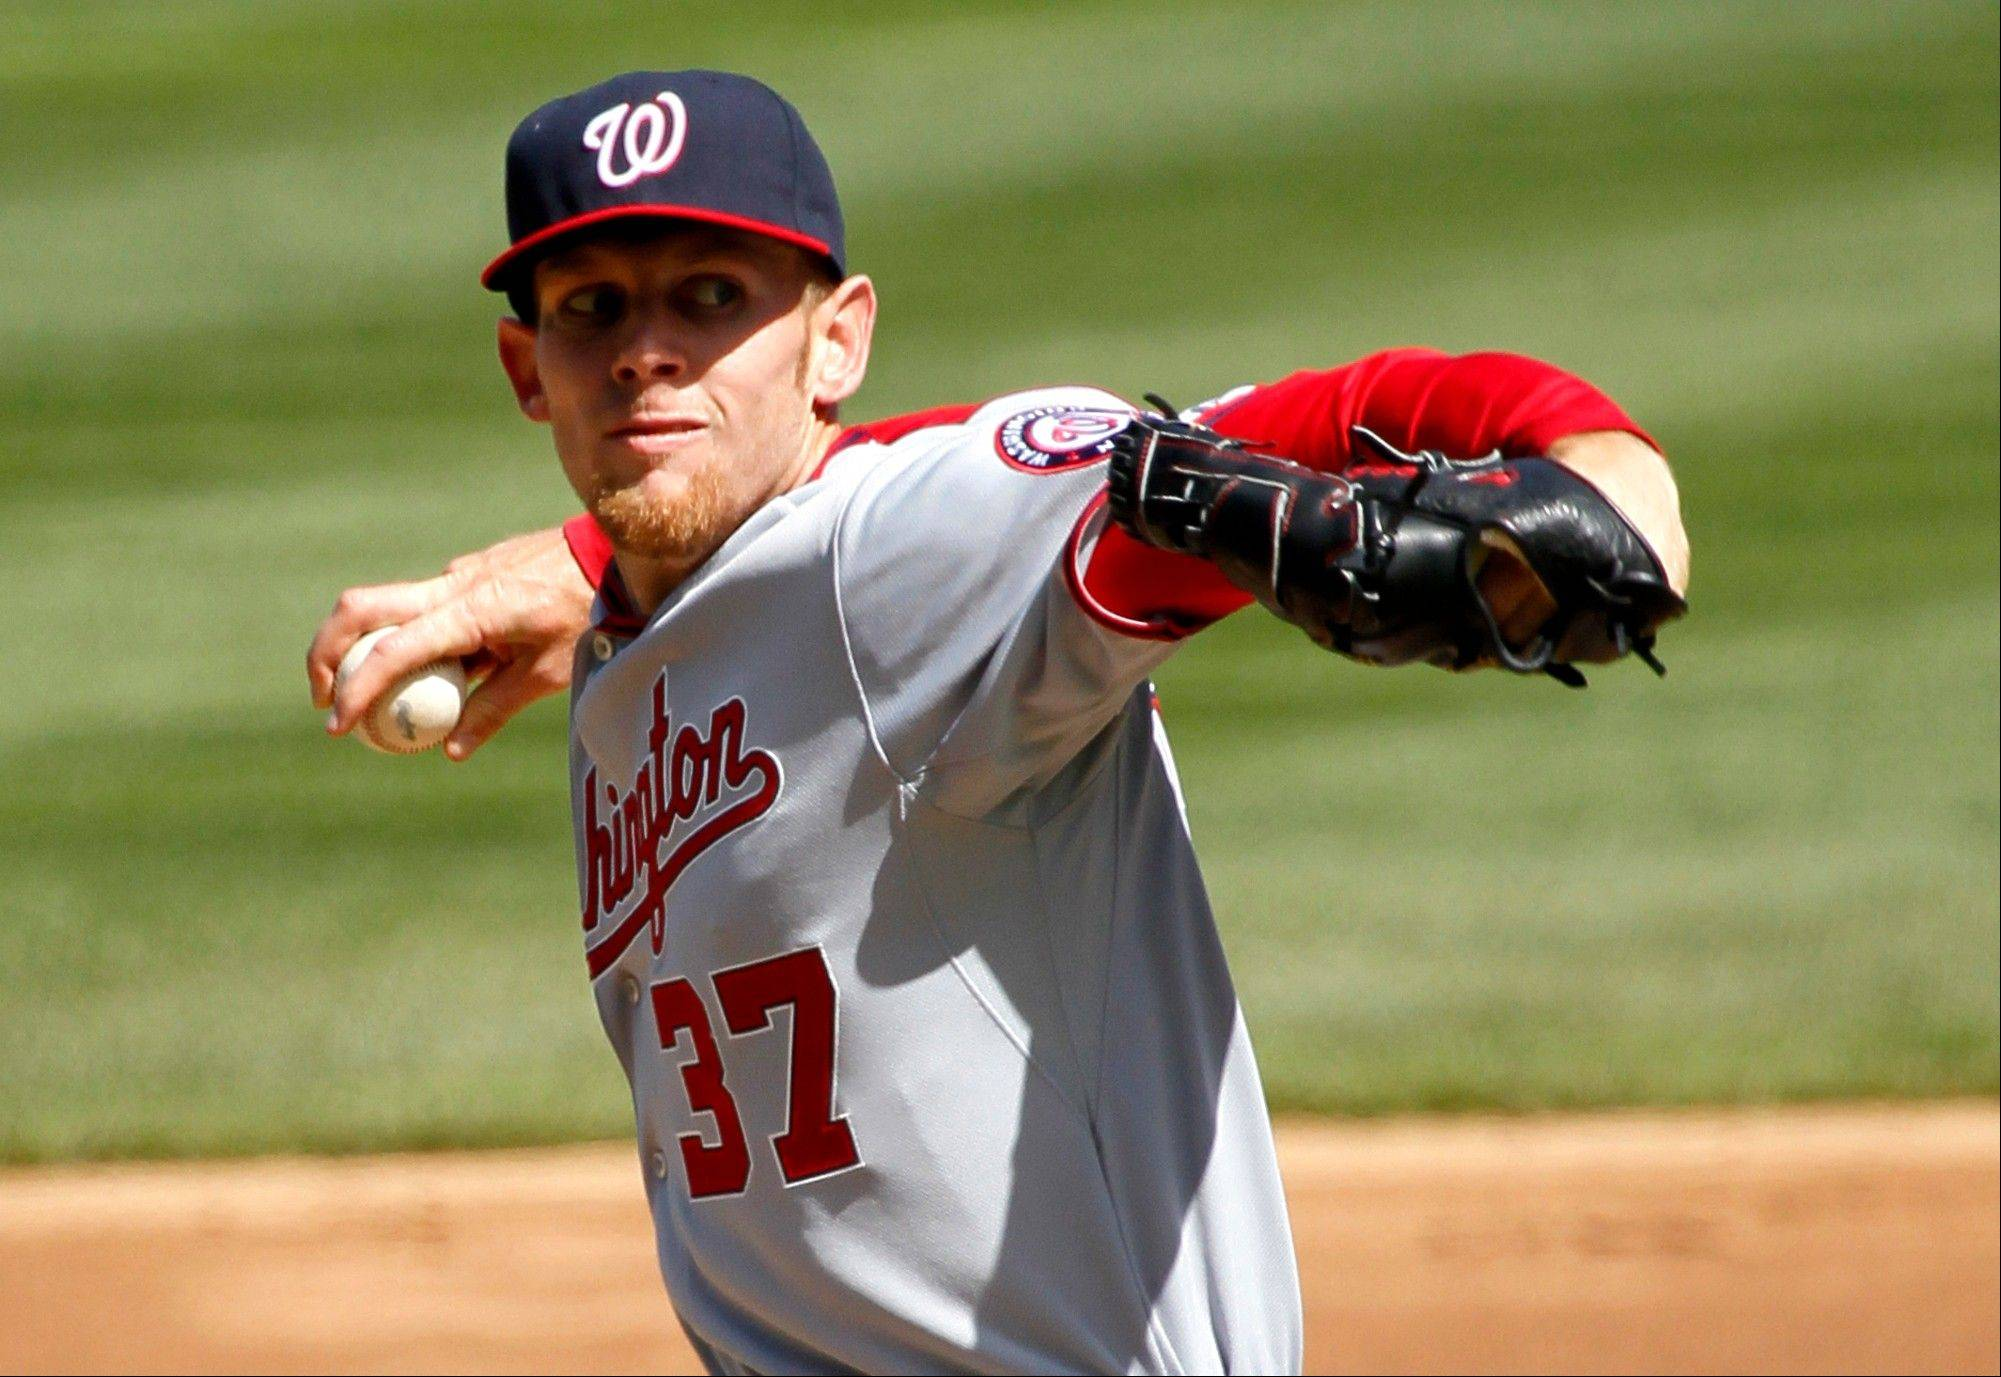 Washington Nationals starting pitcher Stephen Strasburg delivers during the second inning of an opening day baseball game against the Chicago Cubs, Thursday, April 5, 2012, in Chicago.